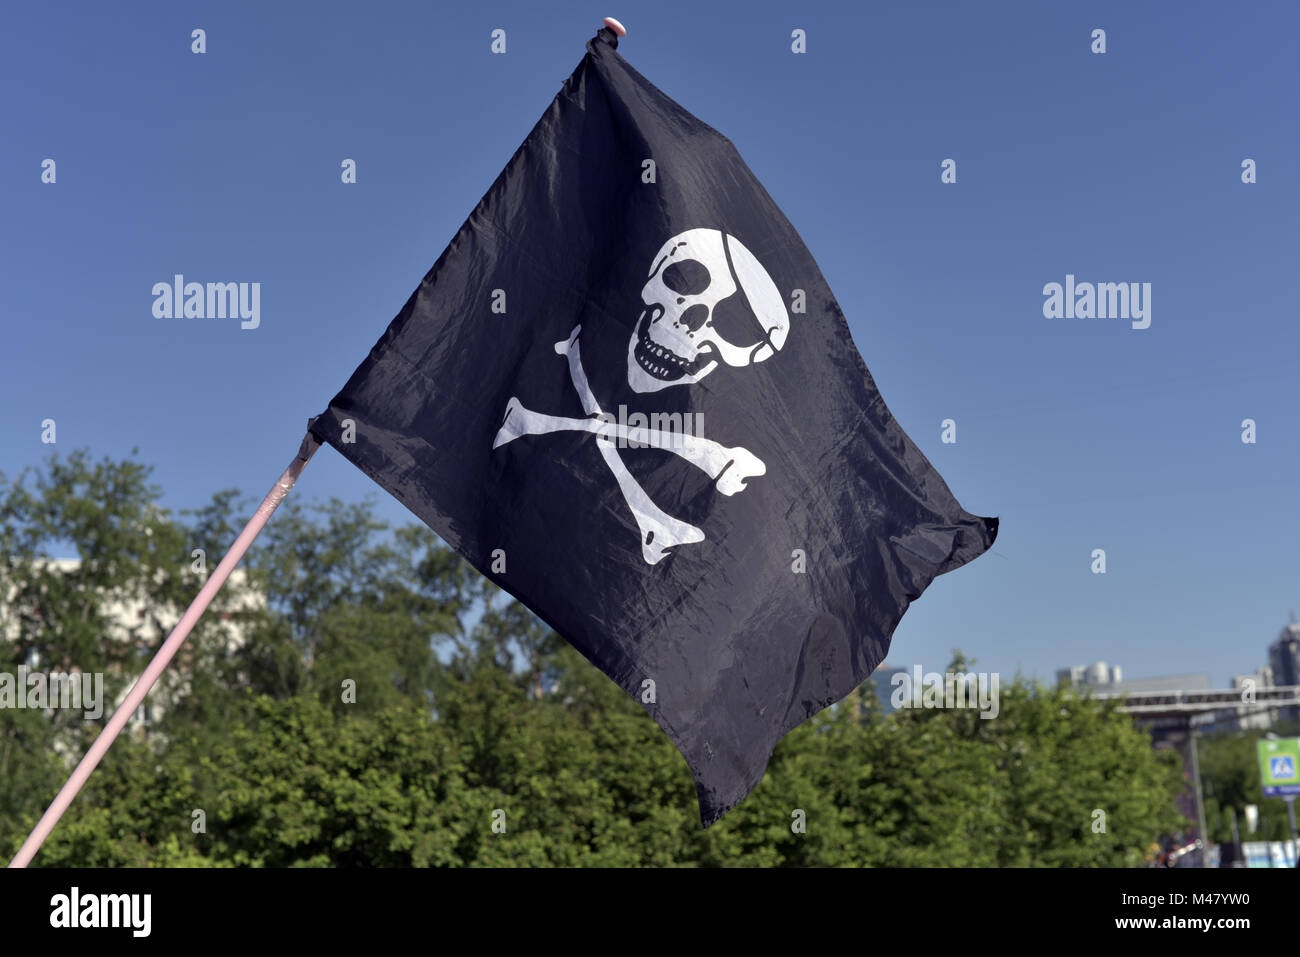 Pirate flag flying in the festival of youth culture - Stock Image